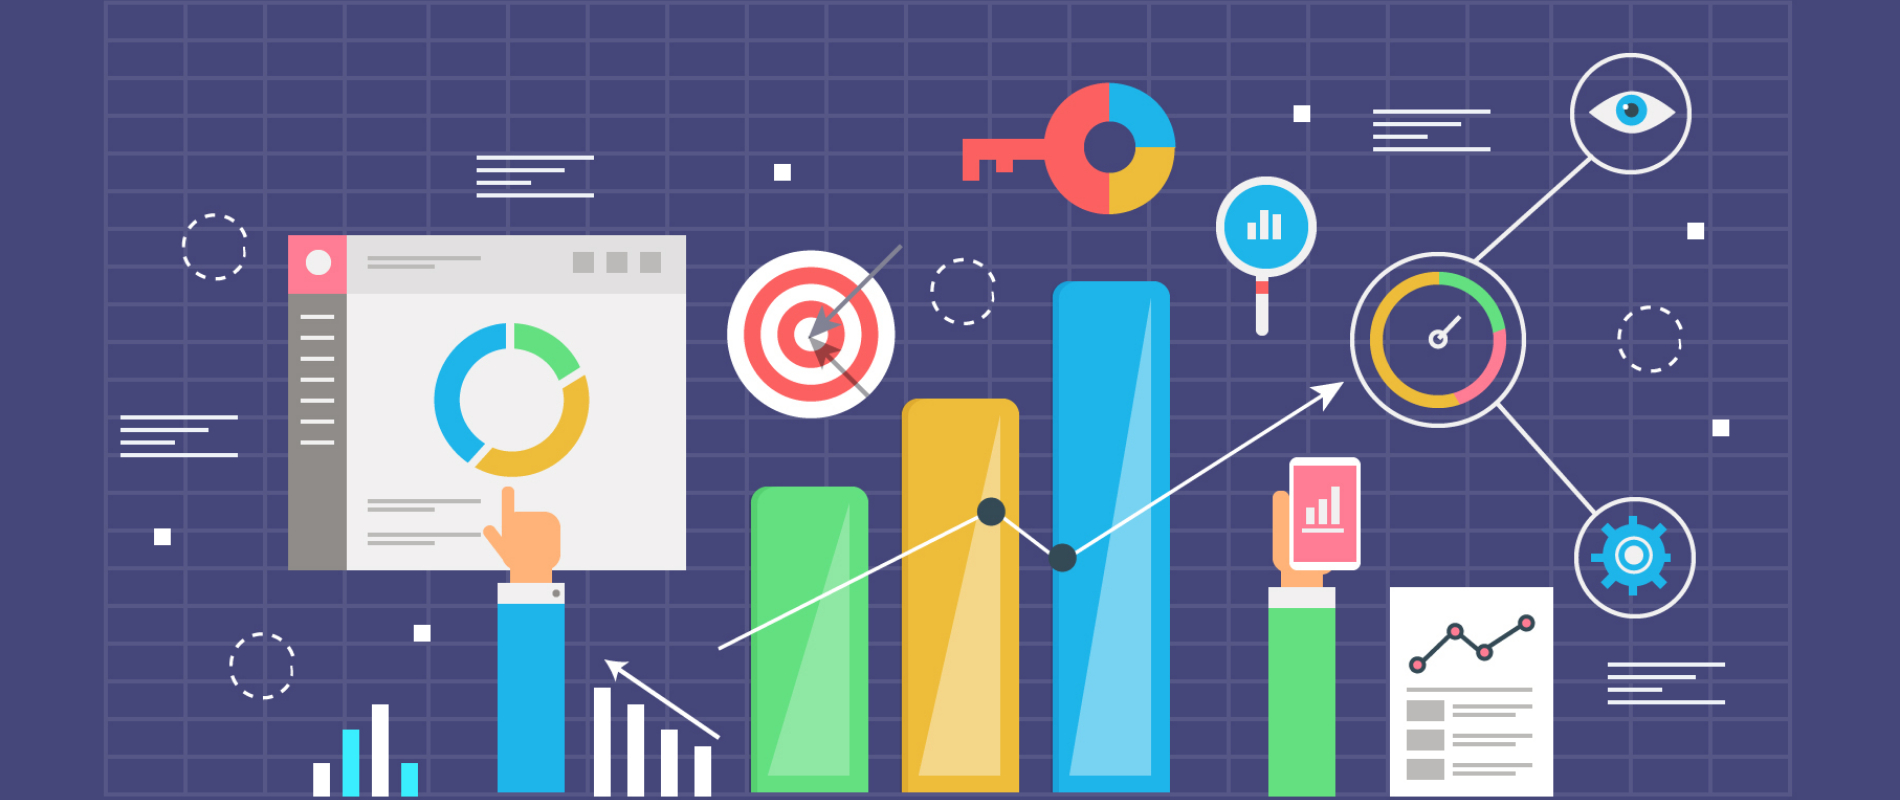 SaaS Marketing Metrics: How To Prove ROI For SaaS Marketing